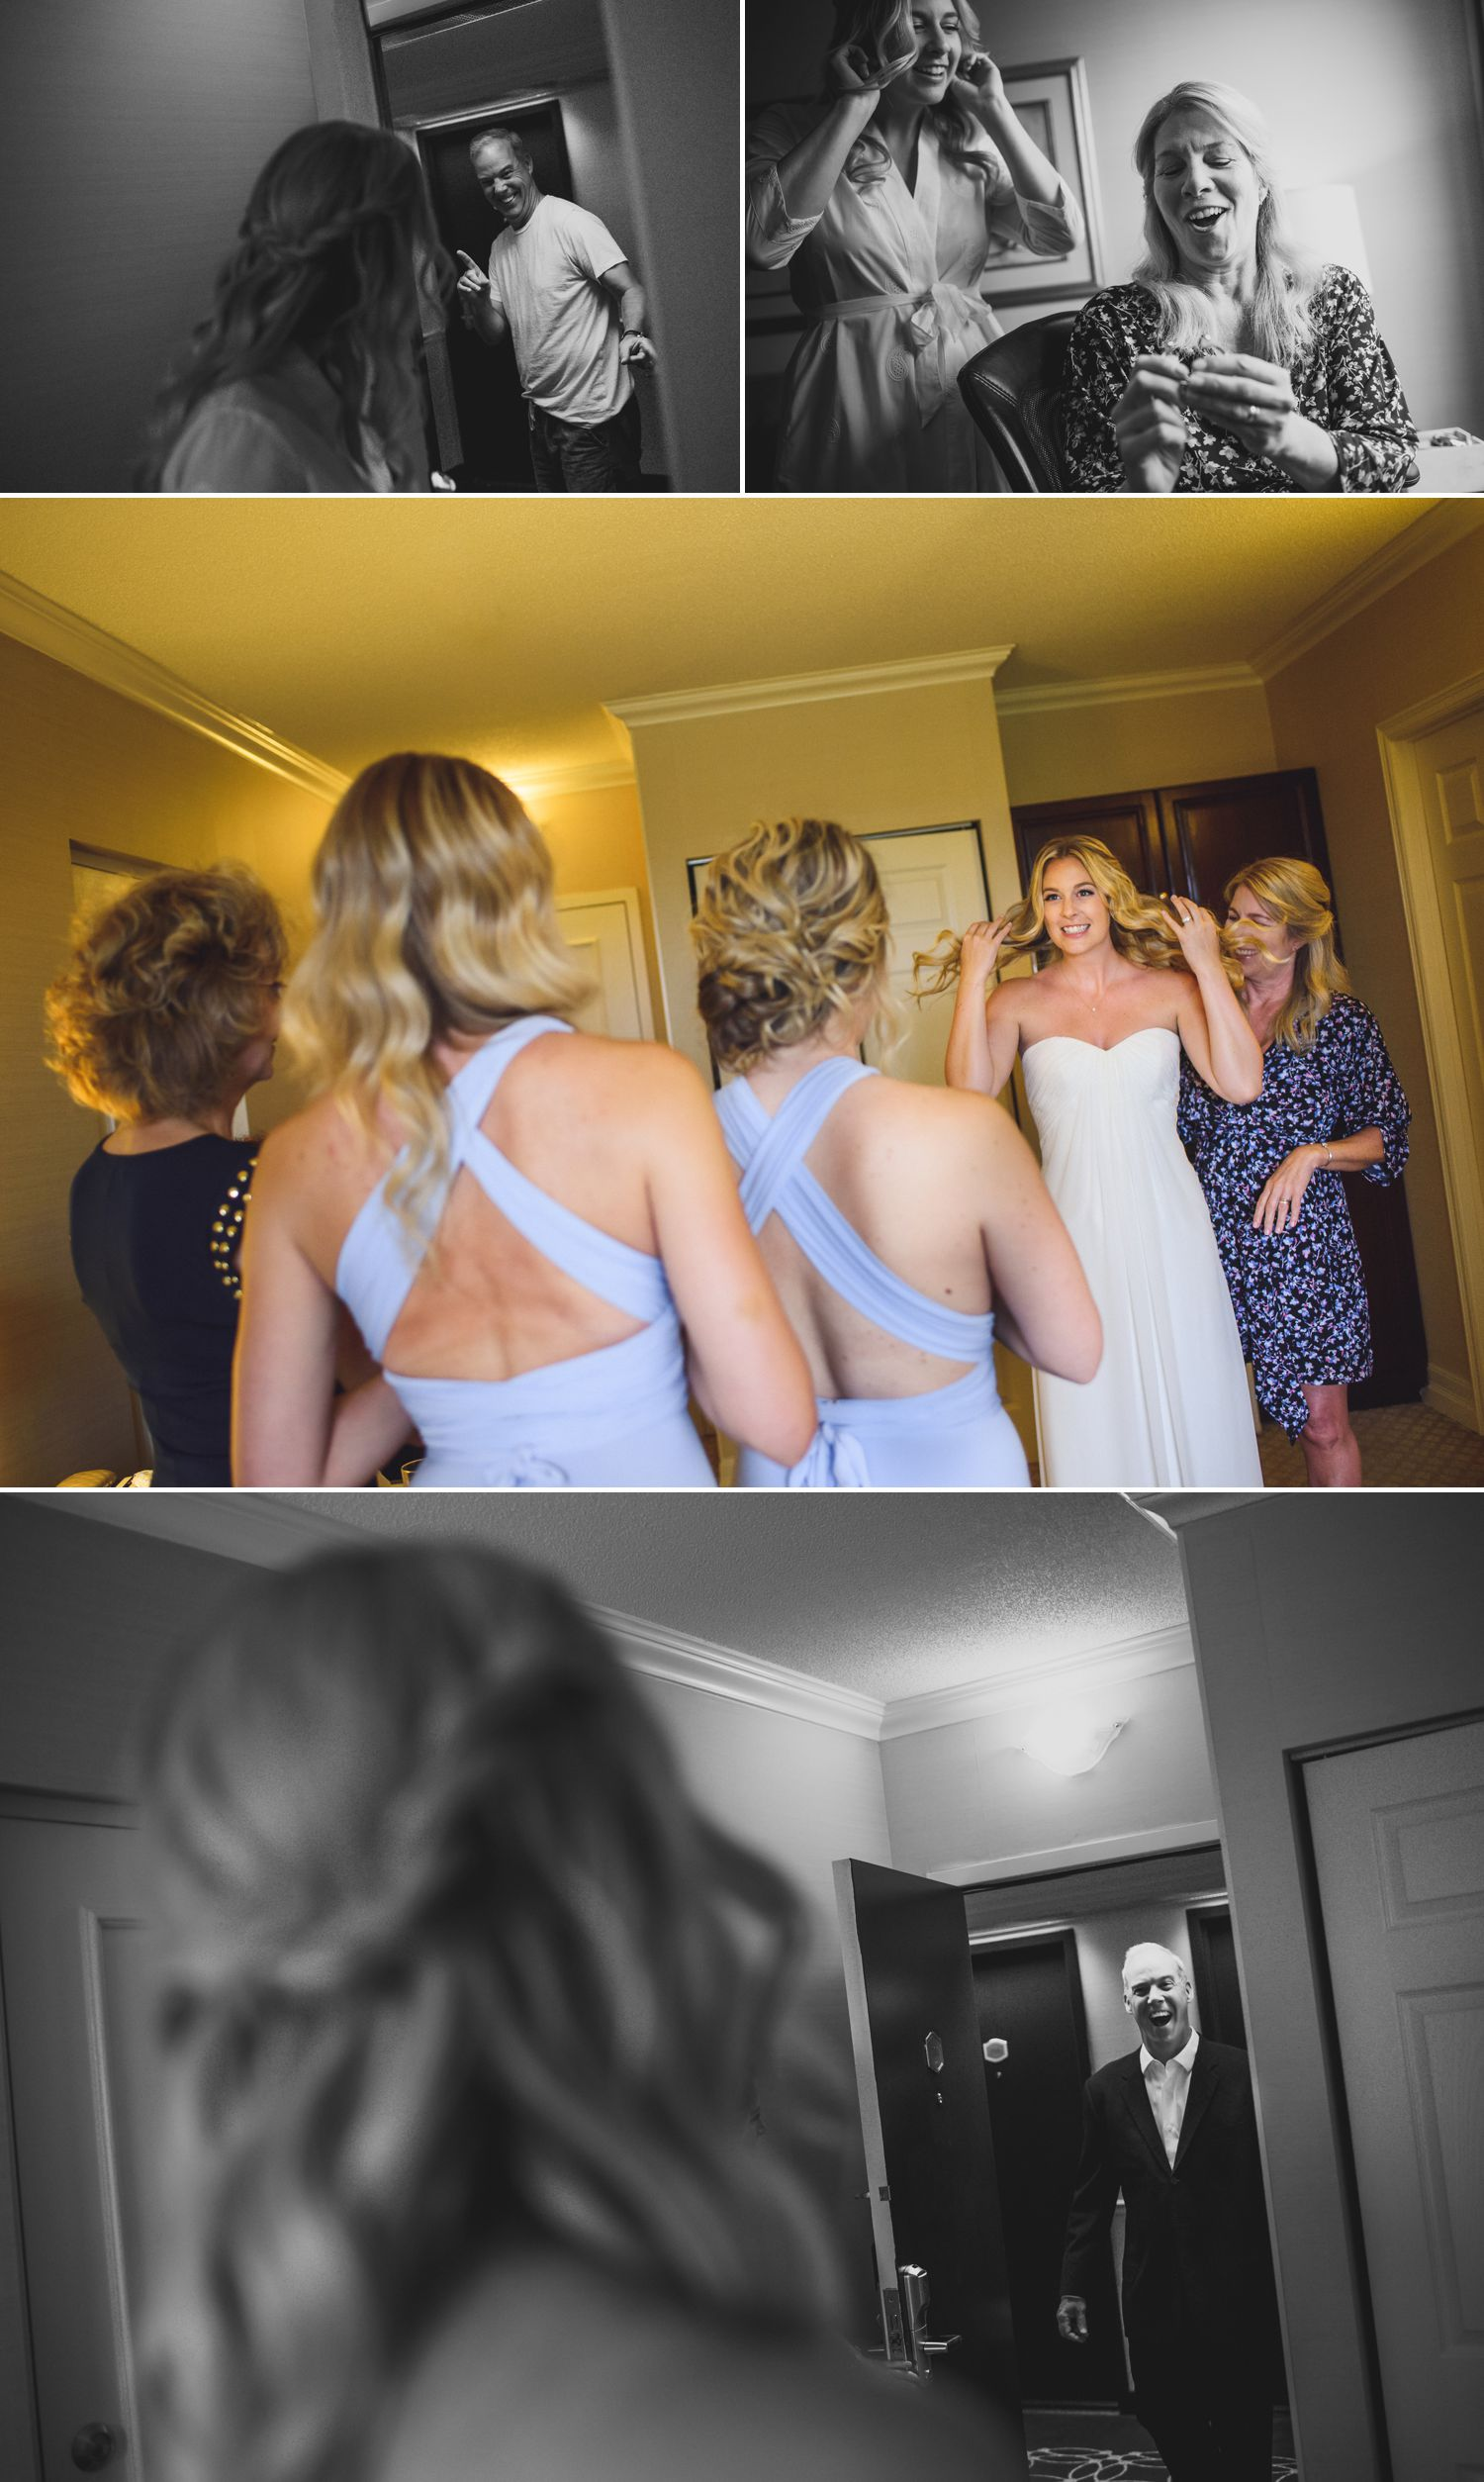 The bride with her bridesmaids and family getting ready at a Ottawa hotel